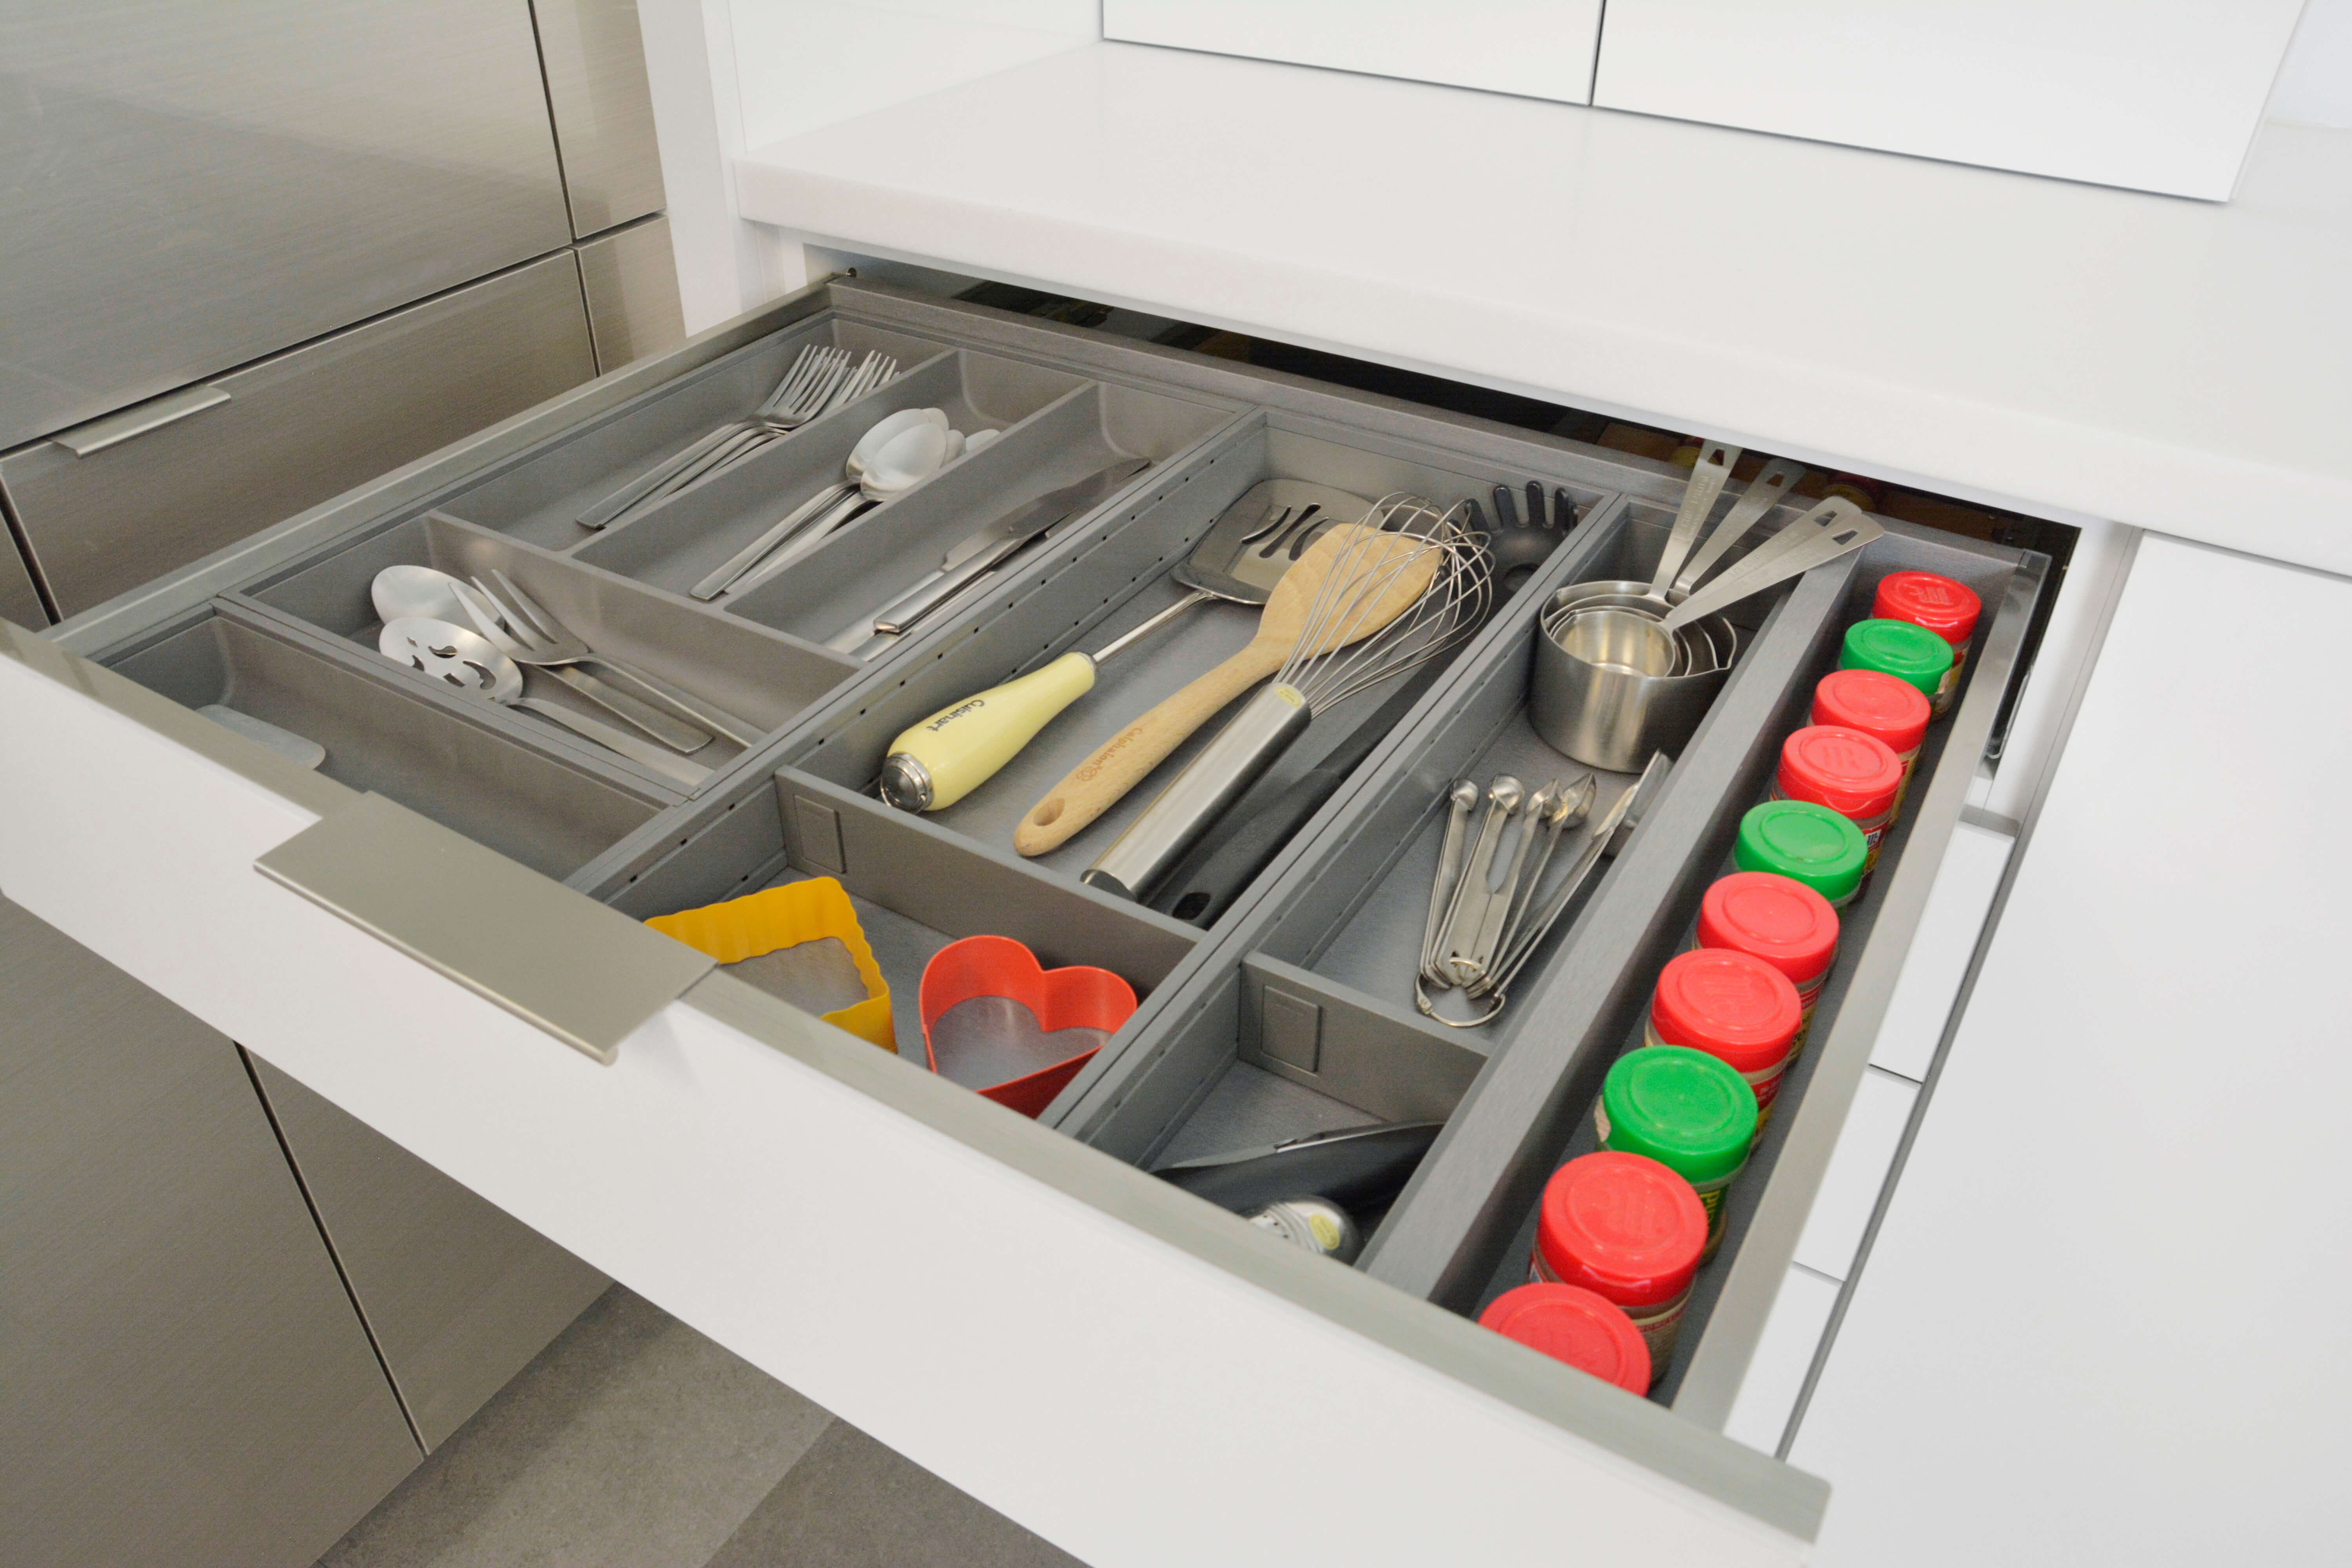 Stainless Steel Cutlery Divider Tray + Utensil Organizers